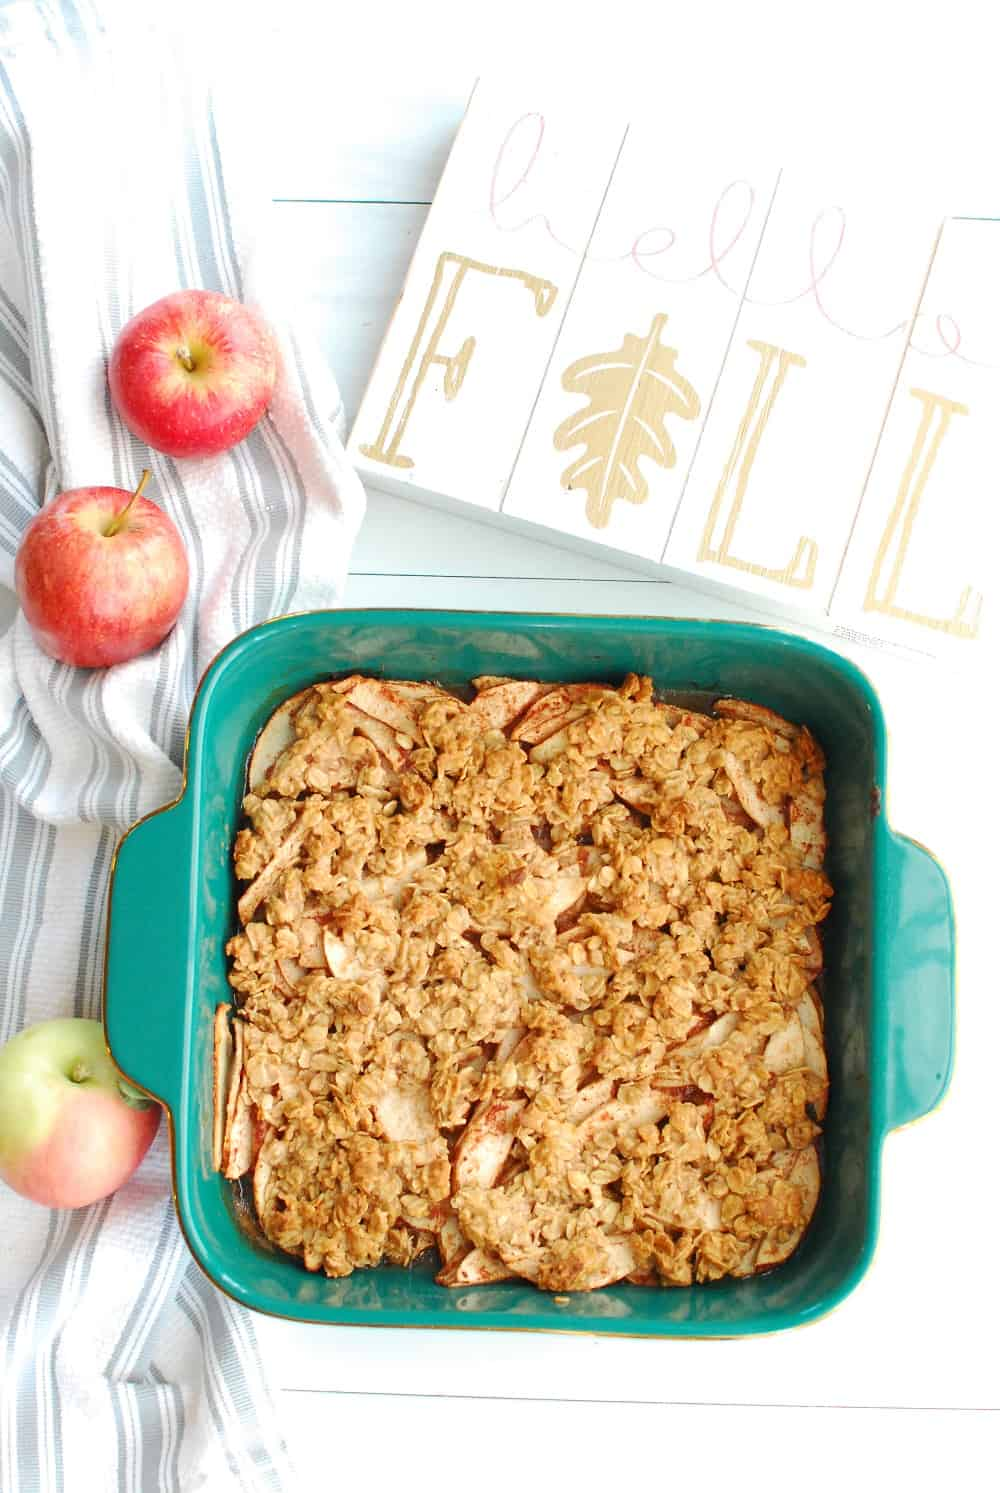 a baking dish full of honey apple crisp, next to a few apples and a flal